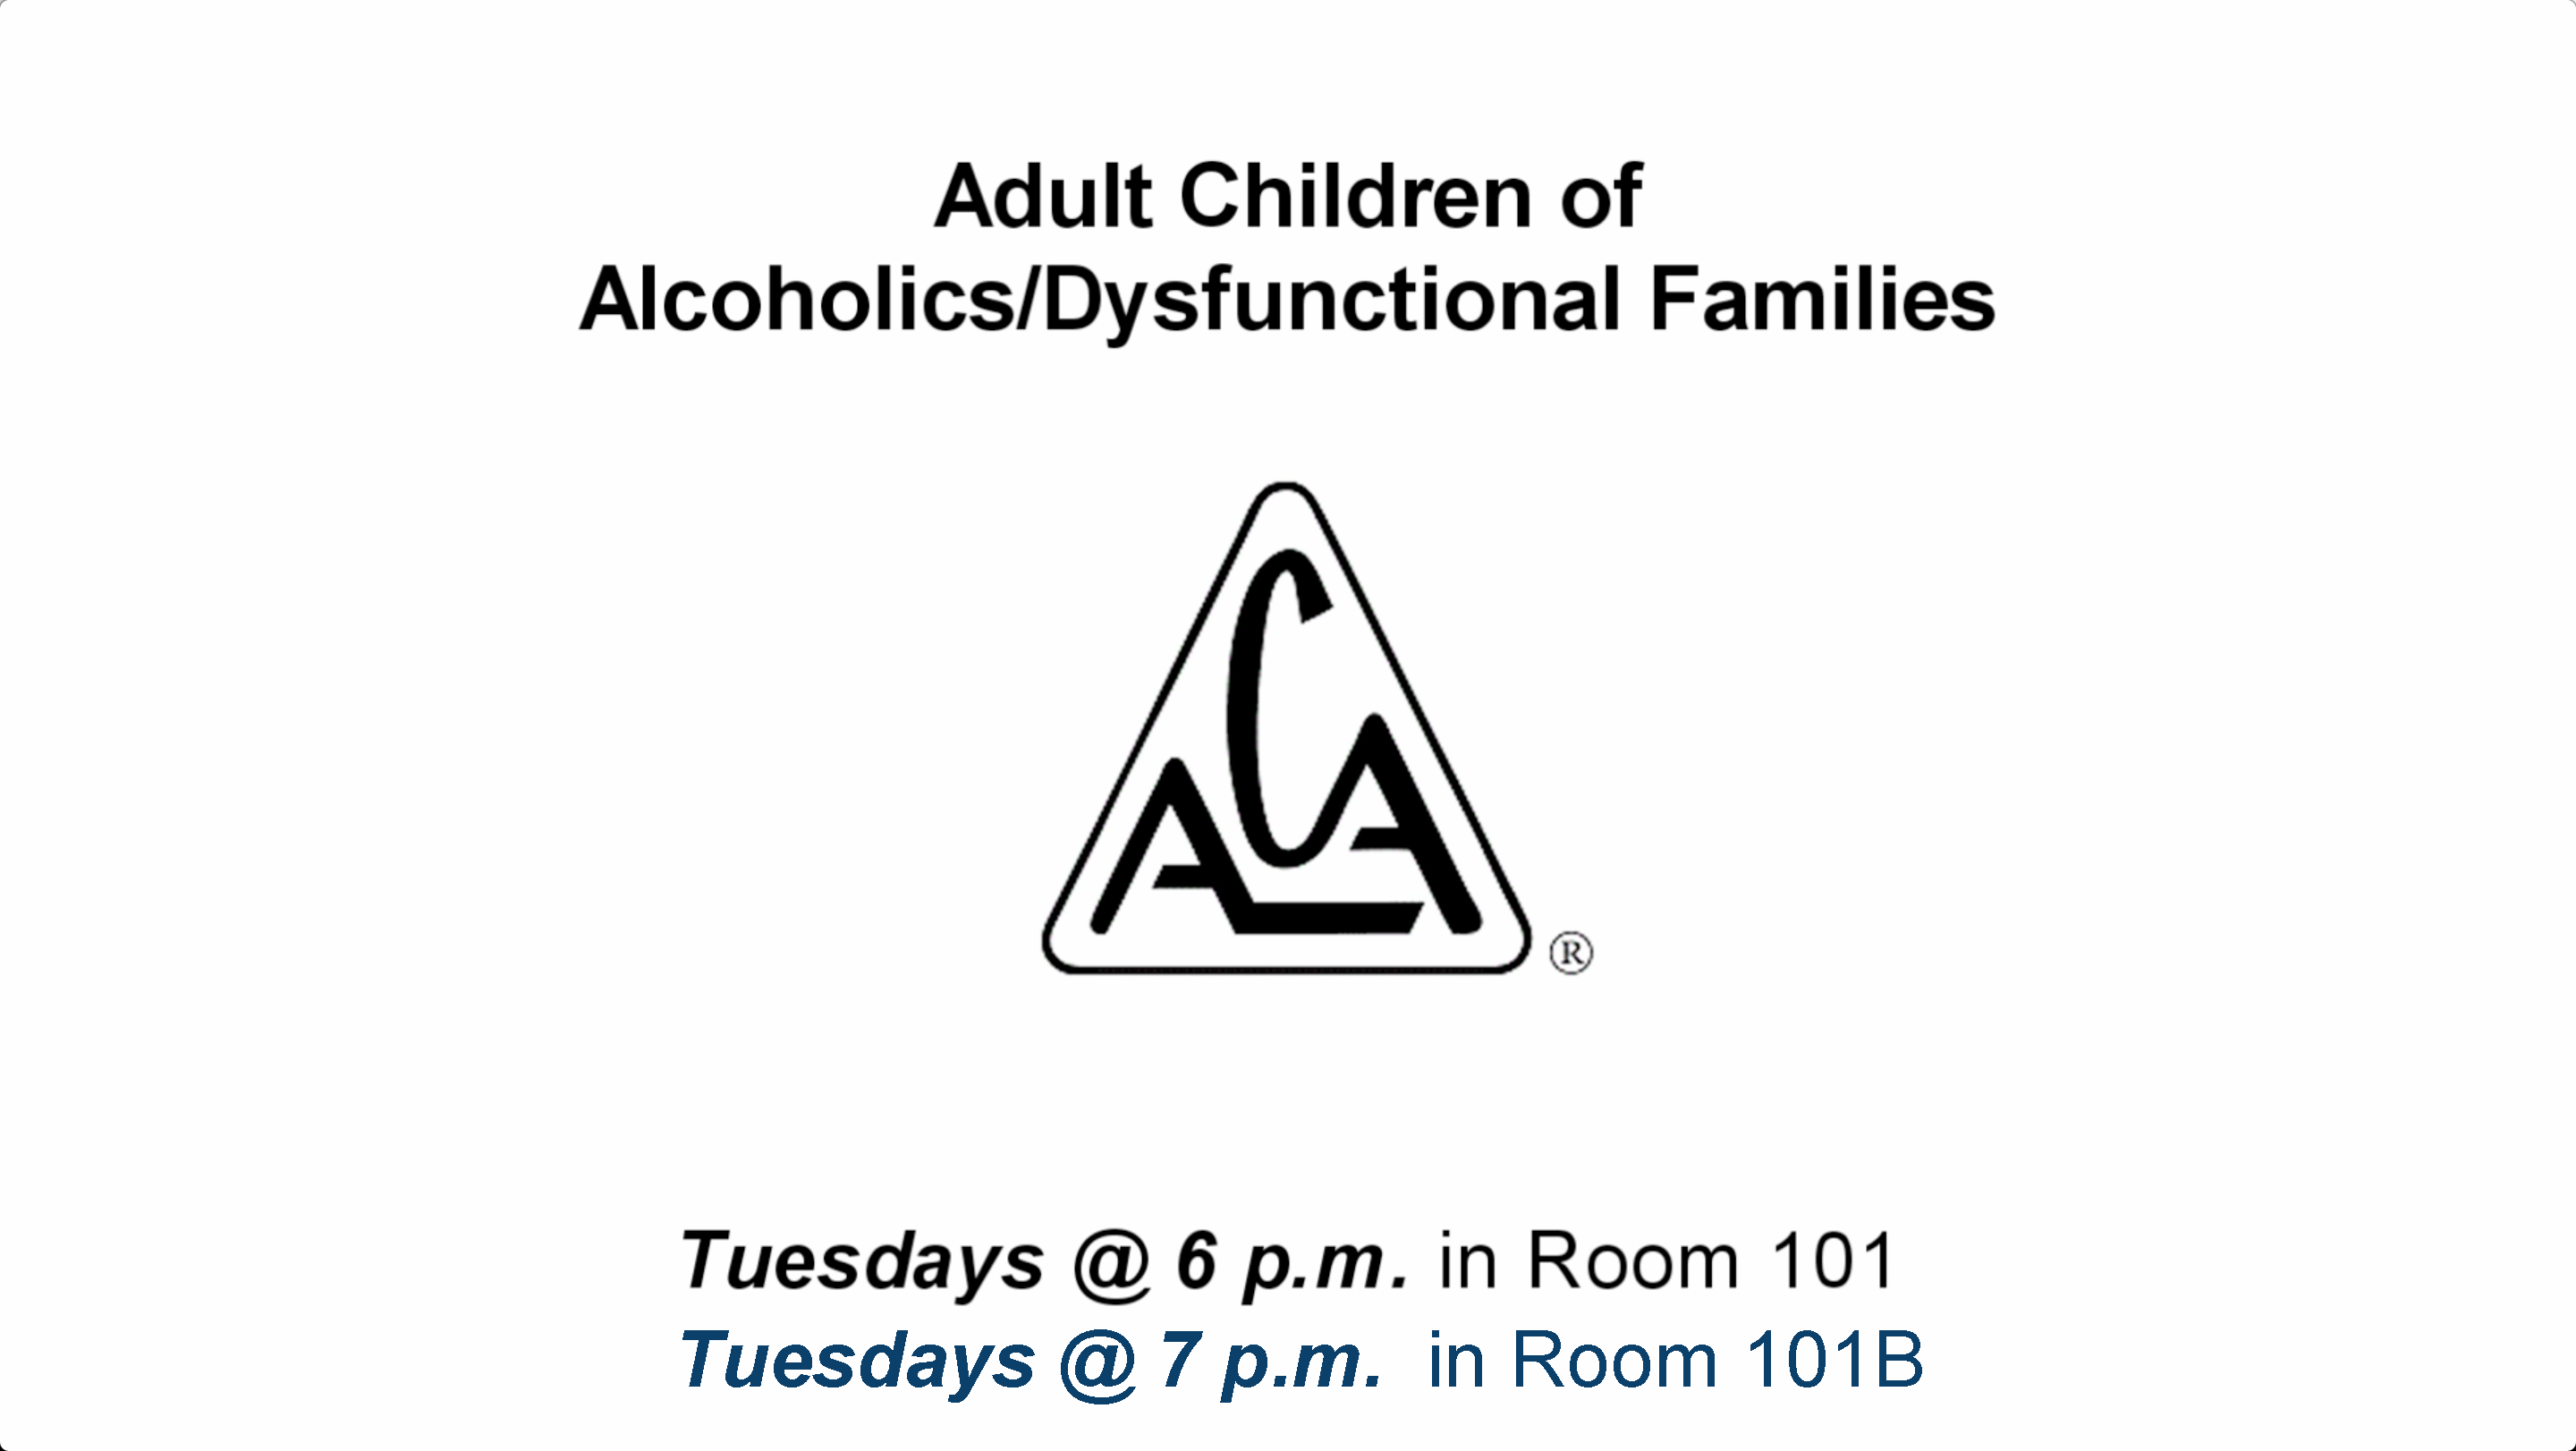 ACA (Adult Children of Alcoholics/Dysfunctional Families)